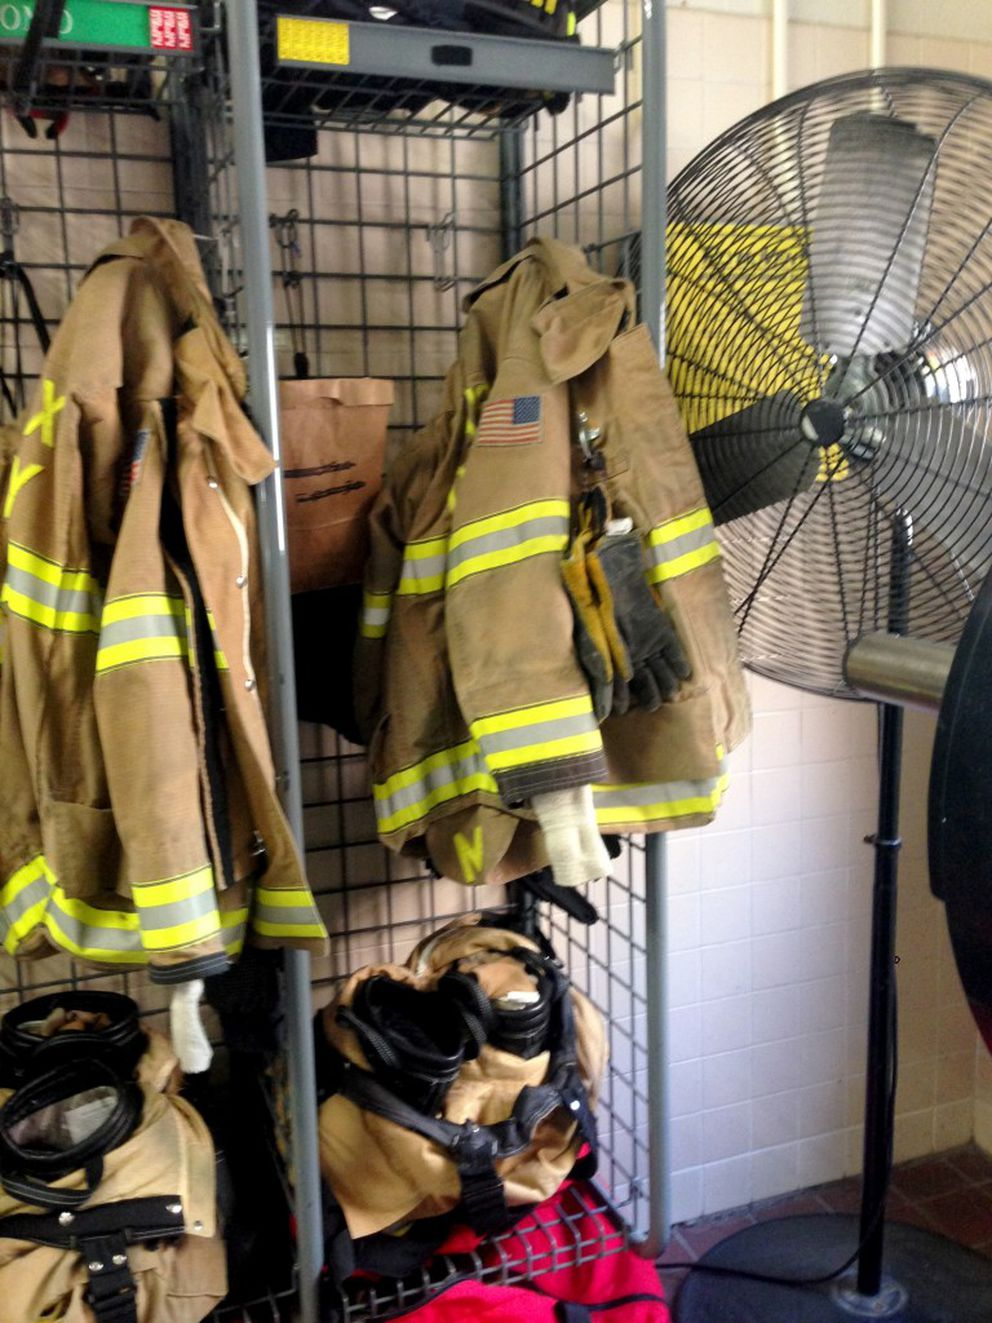 Nicole K. Mittendorff's locker at Fairfax County Fire Station No. 32 in Fairfax Station, Virginia. (Washington Post photo by Justin Jouvenal)